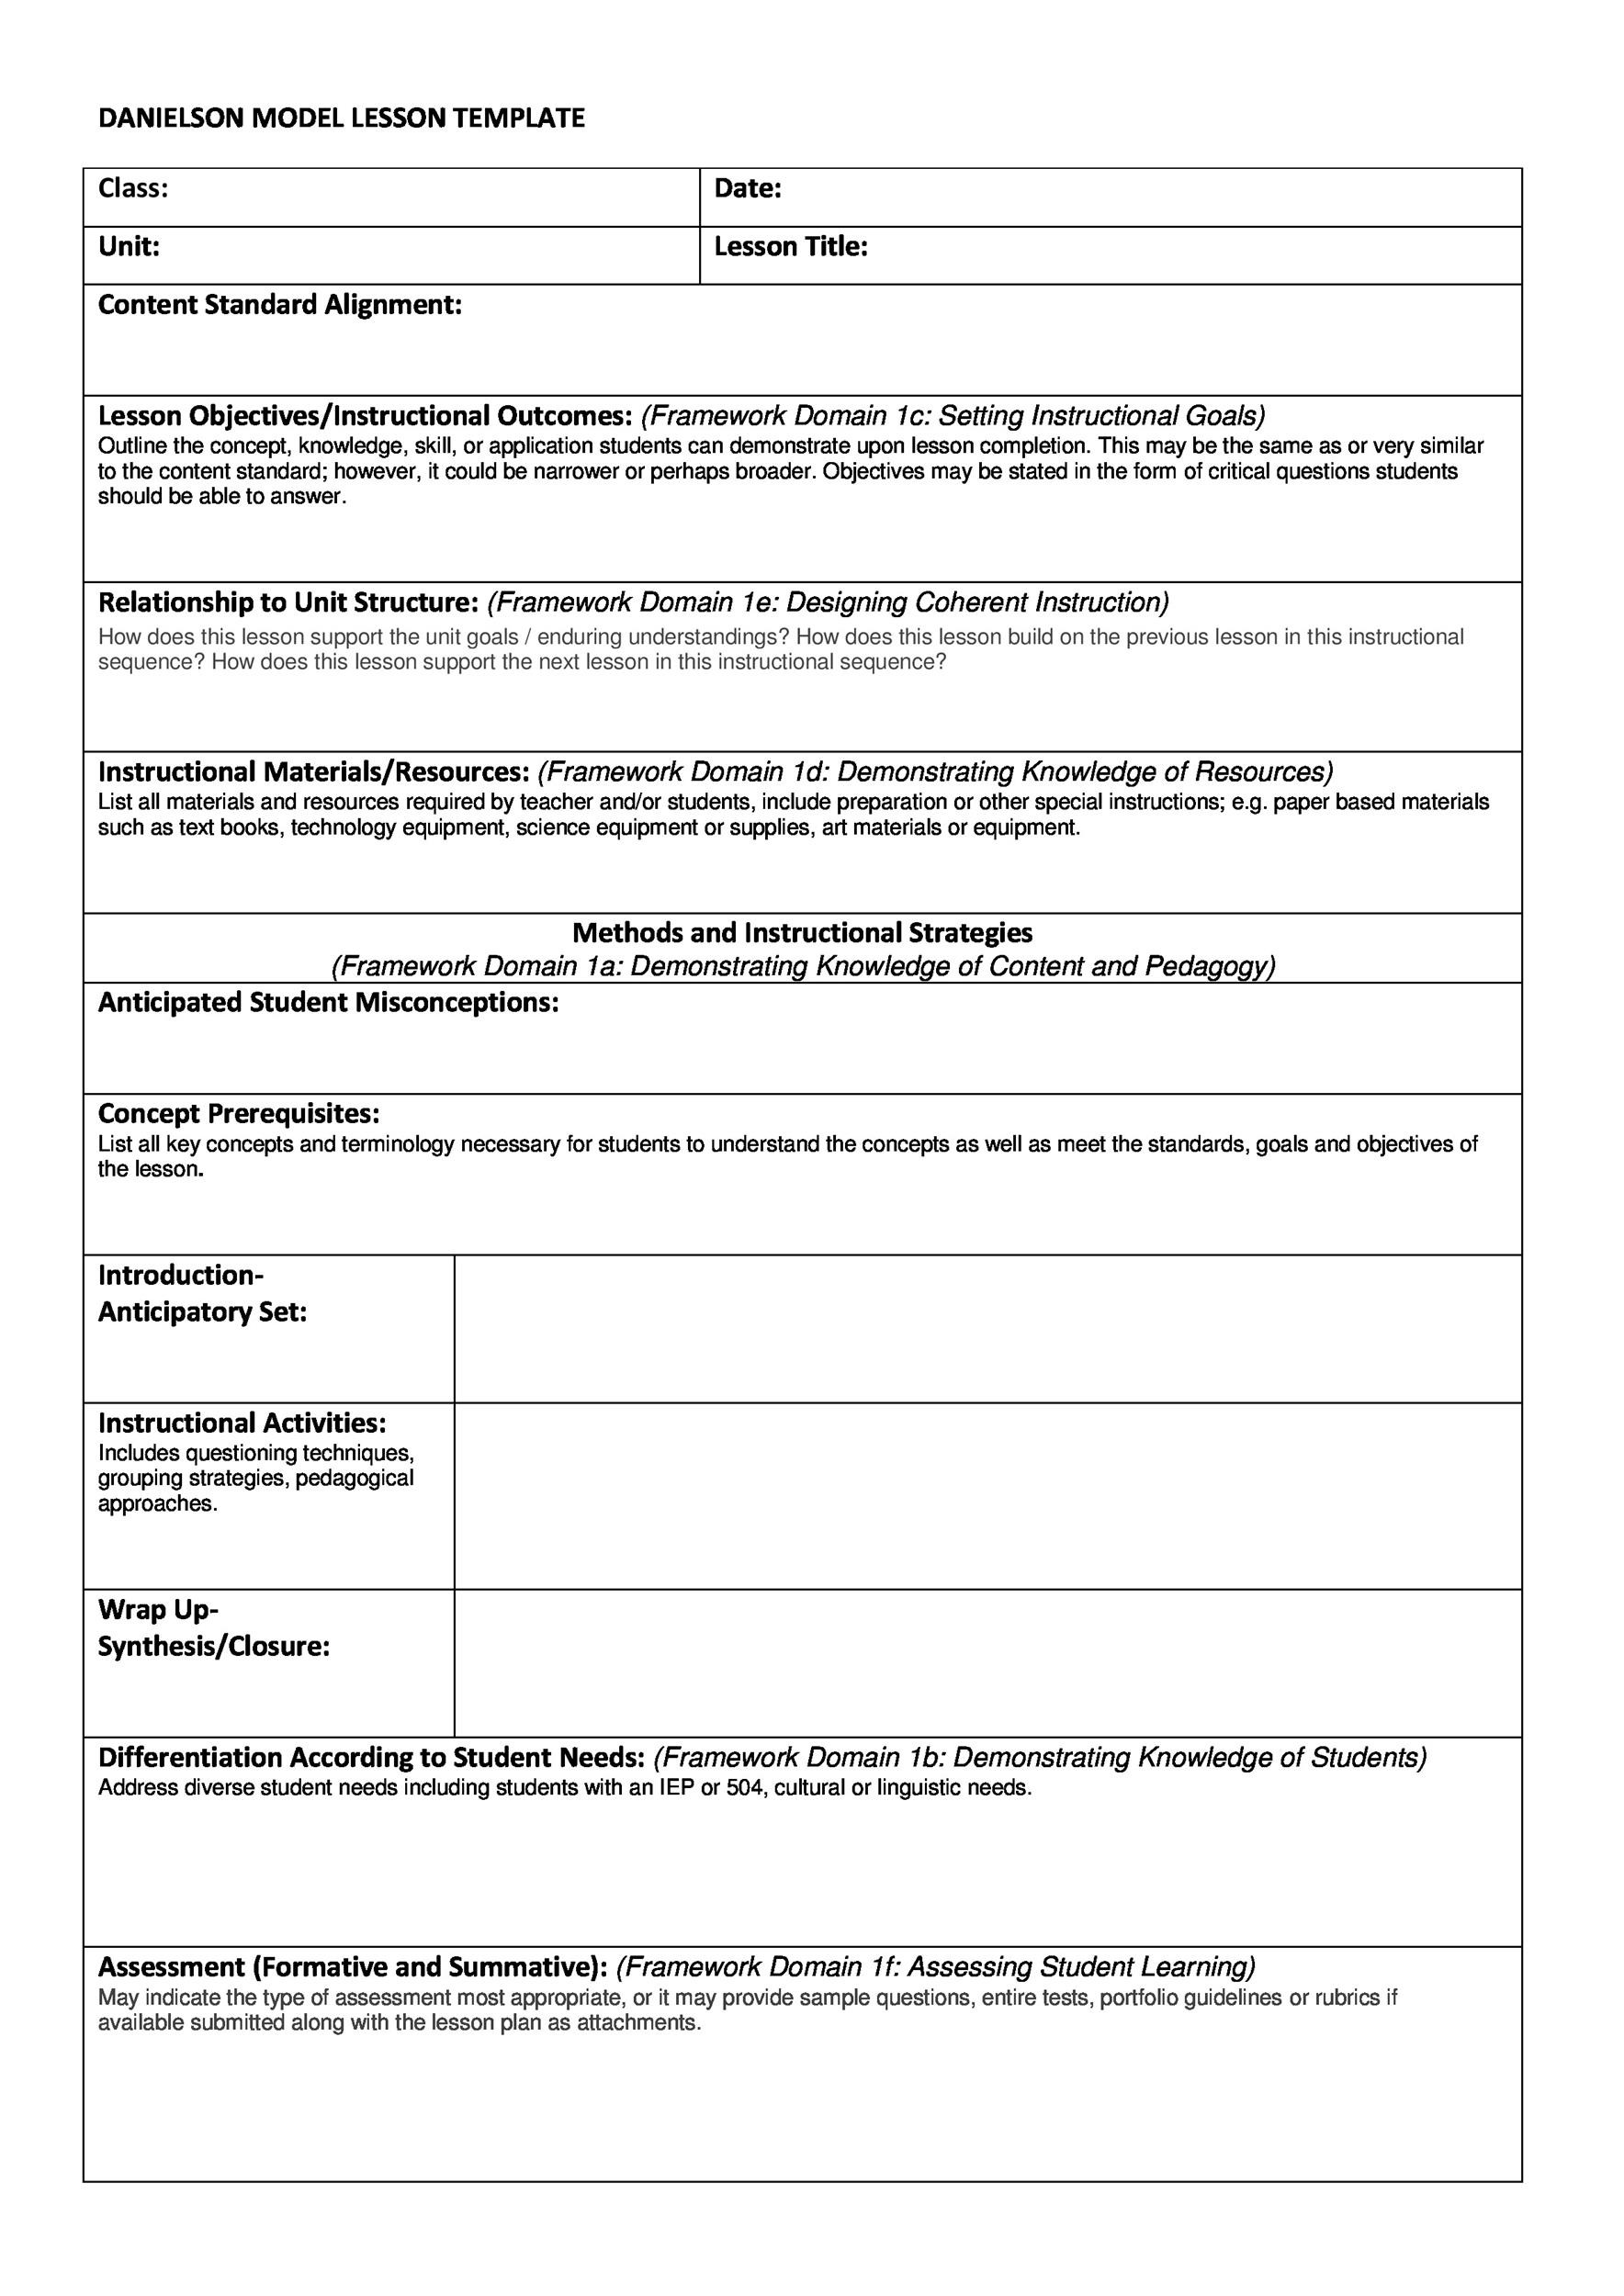 teachers college lesson plan template - 44 free lesson plan templates common core preschool weekly